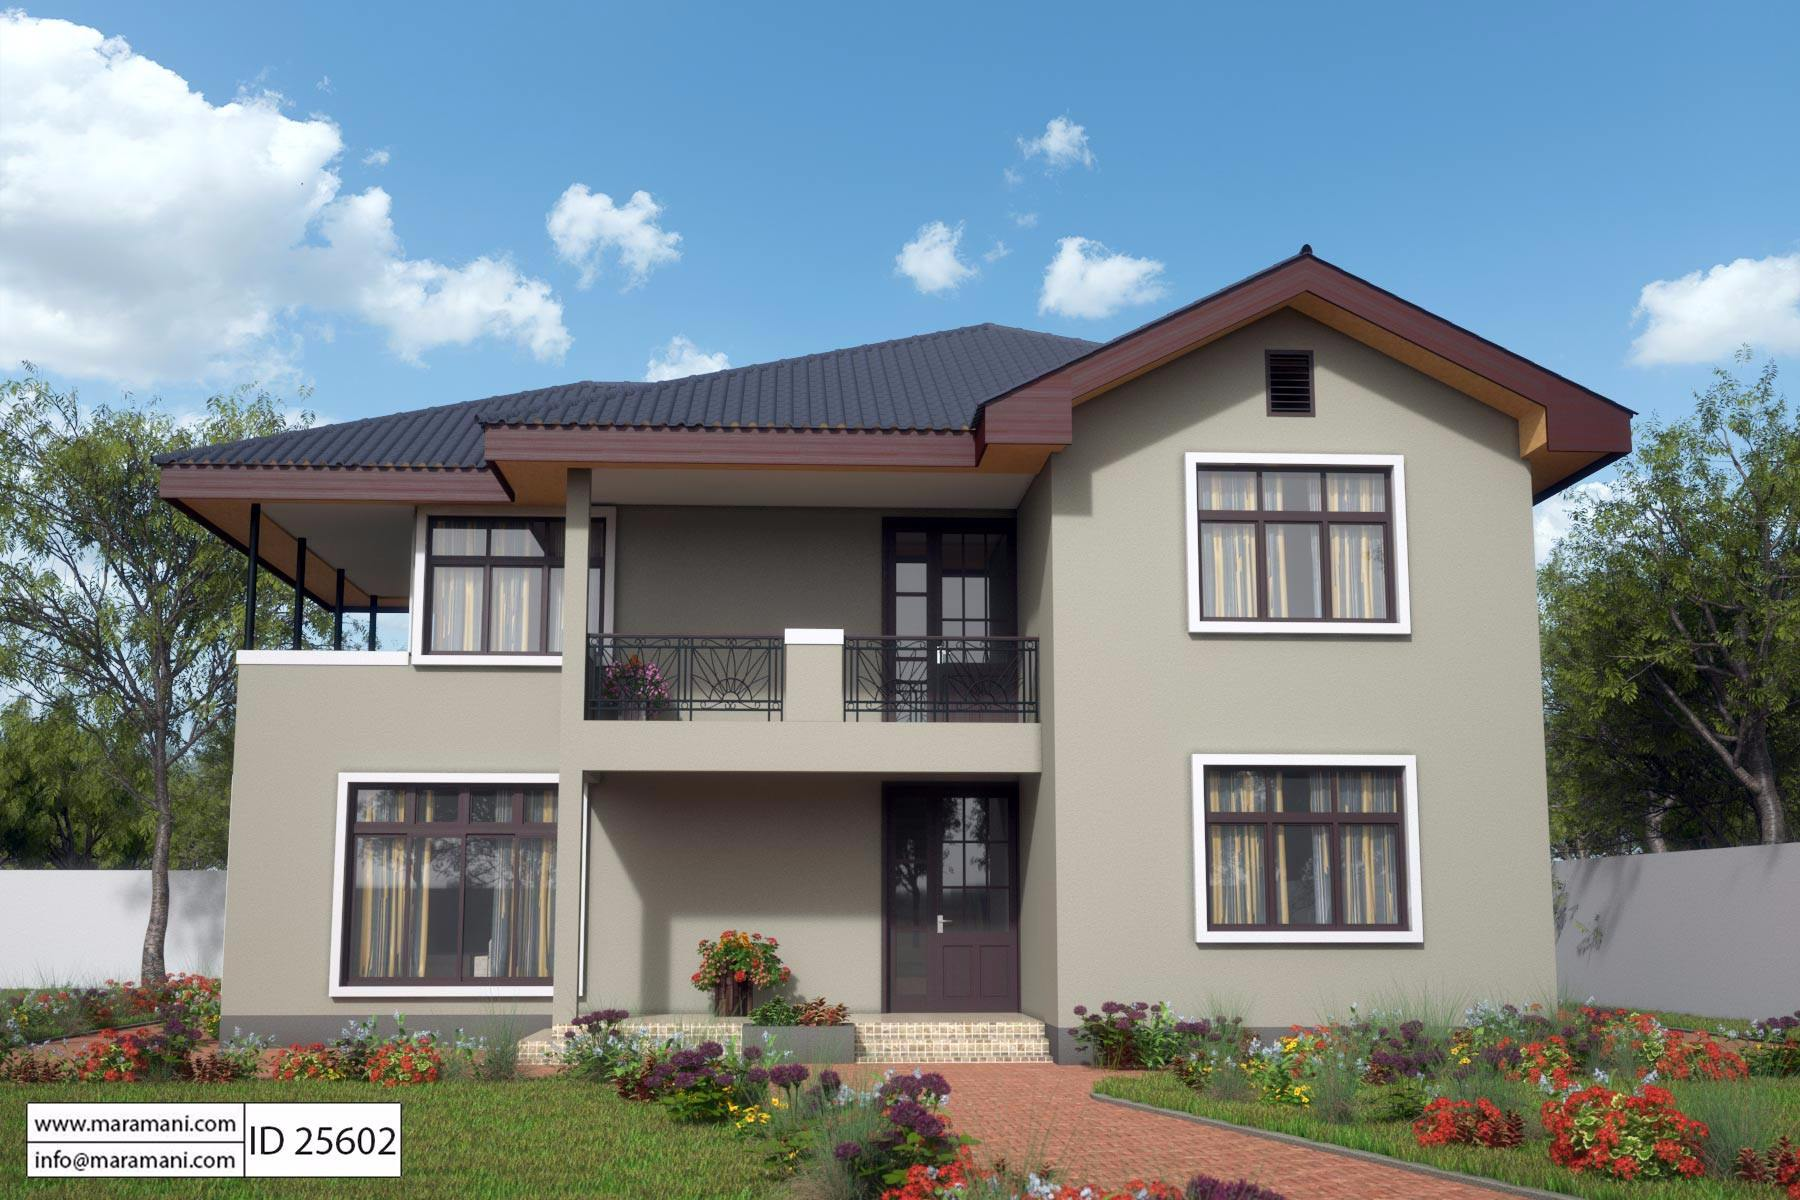 5 bedroom house design id 25602 house plans by maramani for Building a one room house